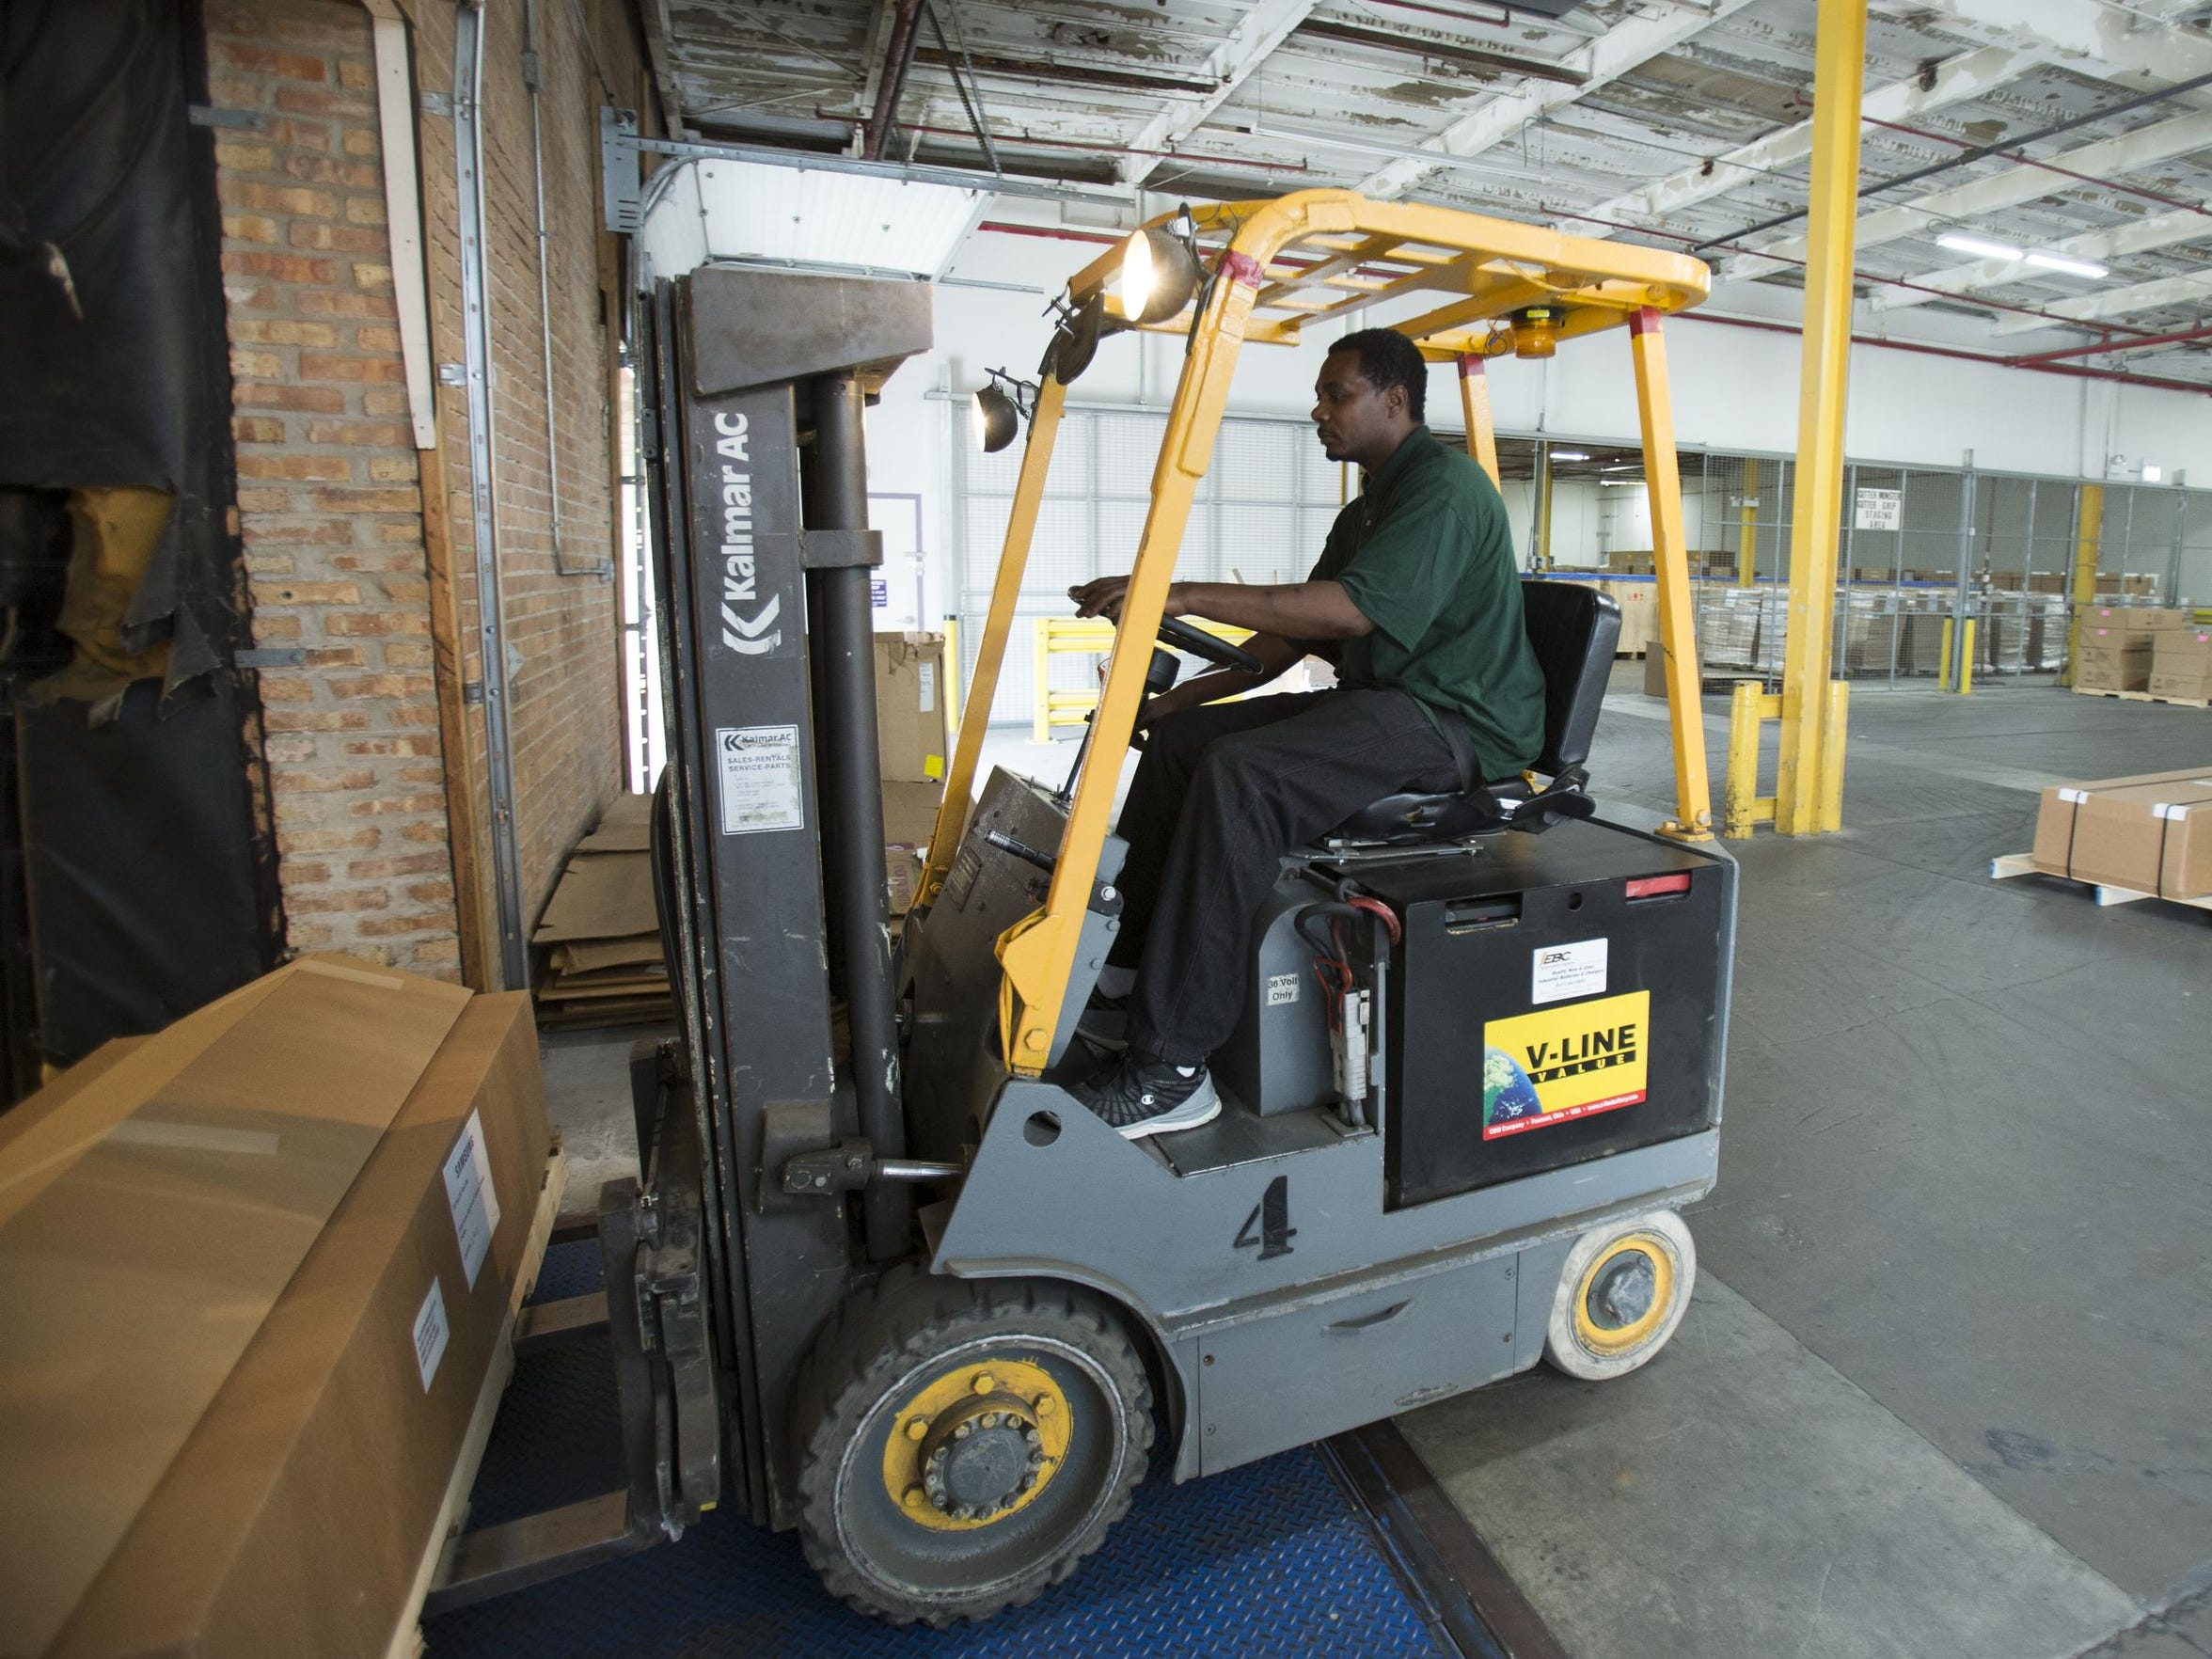 Keith Cooper operates a forklift at Rapid Displays